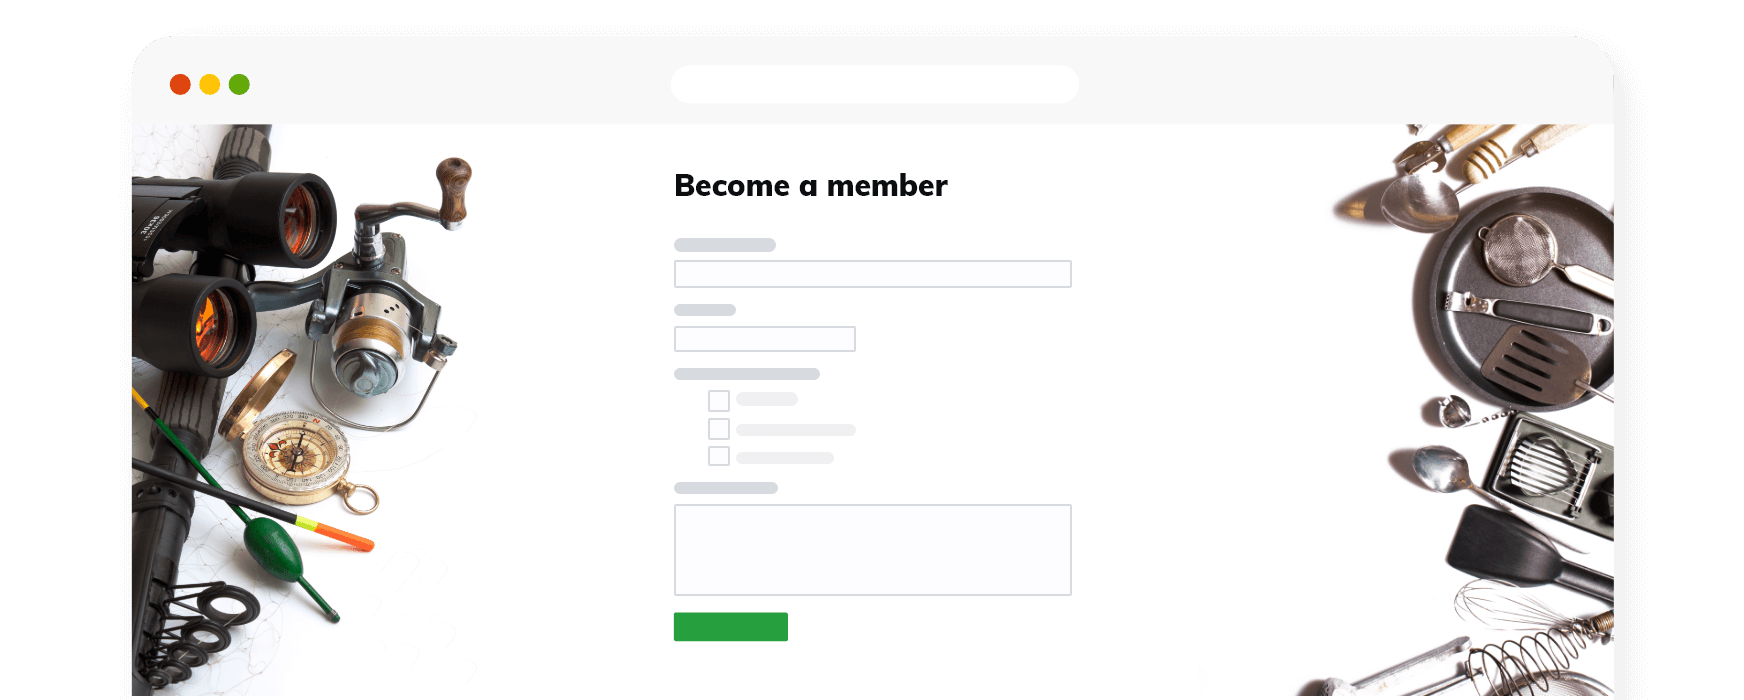 Sign up page illustration